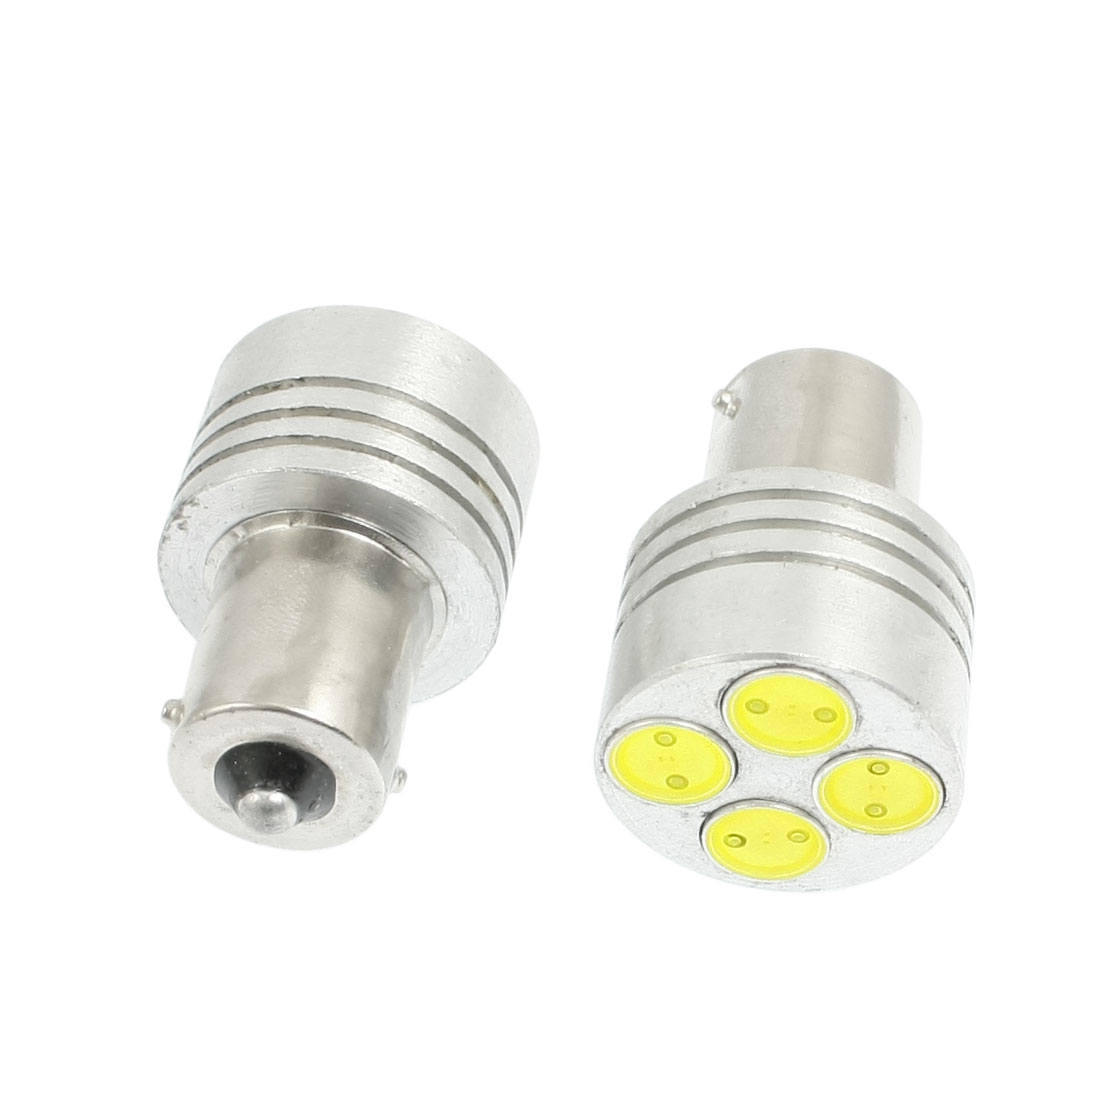 2 Pcs Car BA15S 1156 White SMD 4 LED Bulb Tail Turning Light Lamp 4W